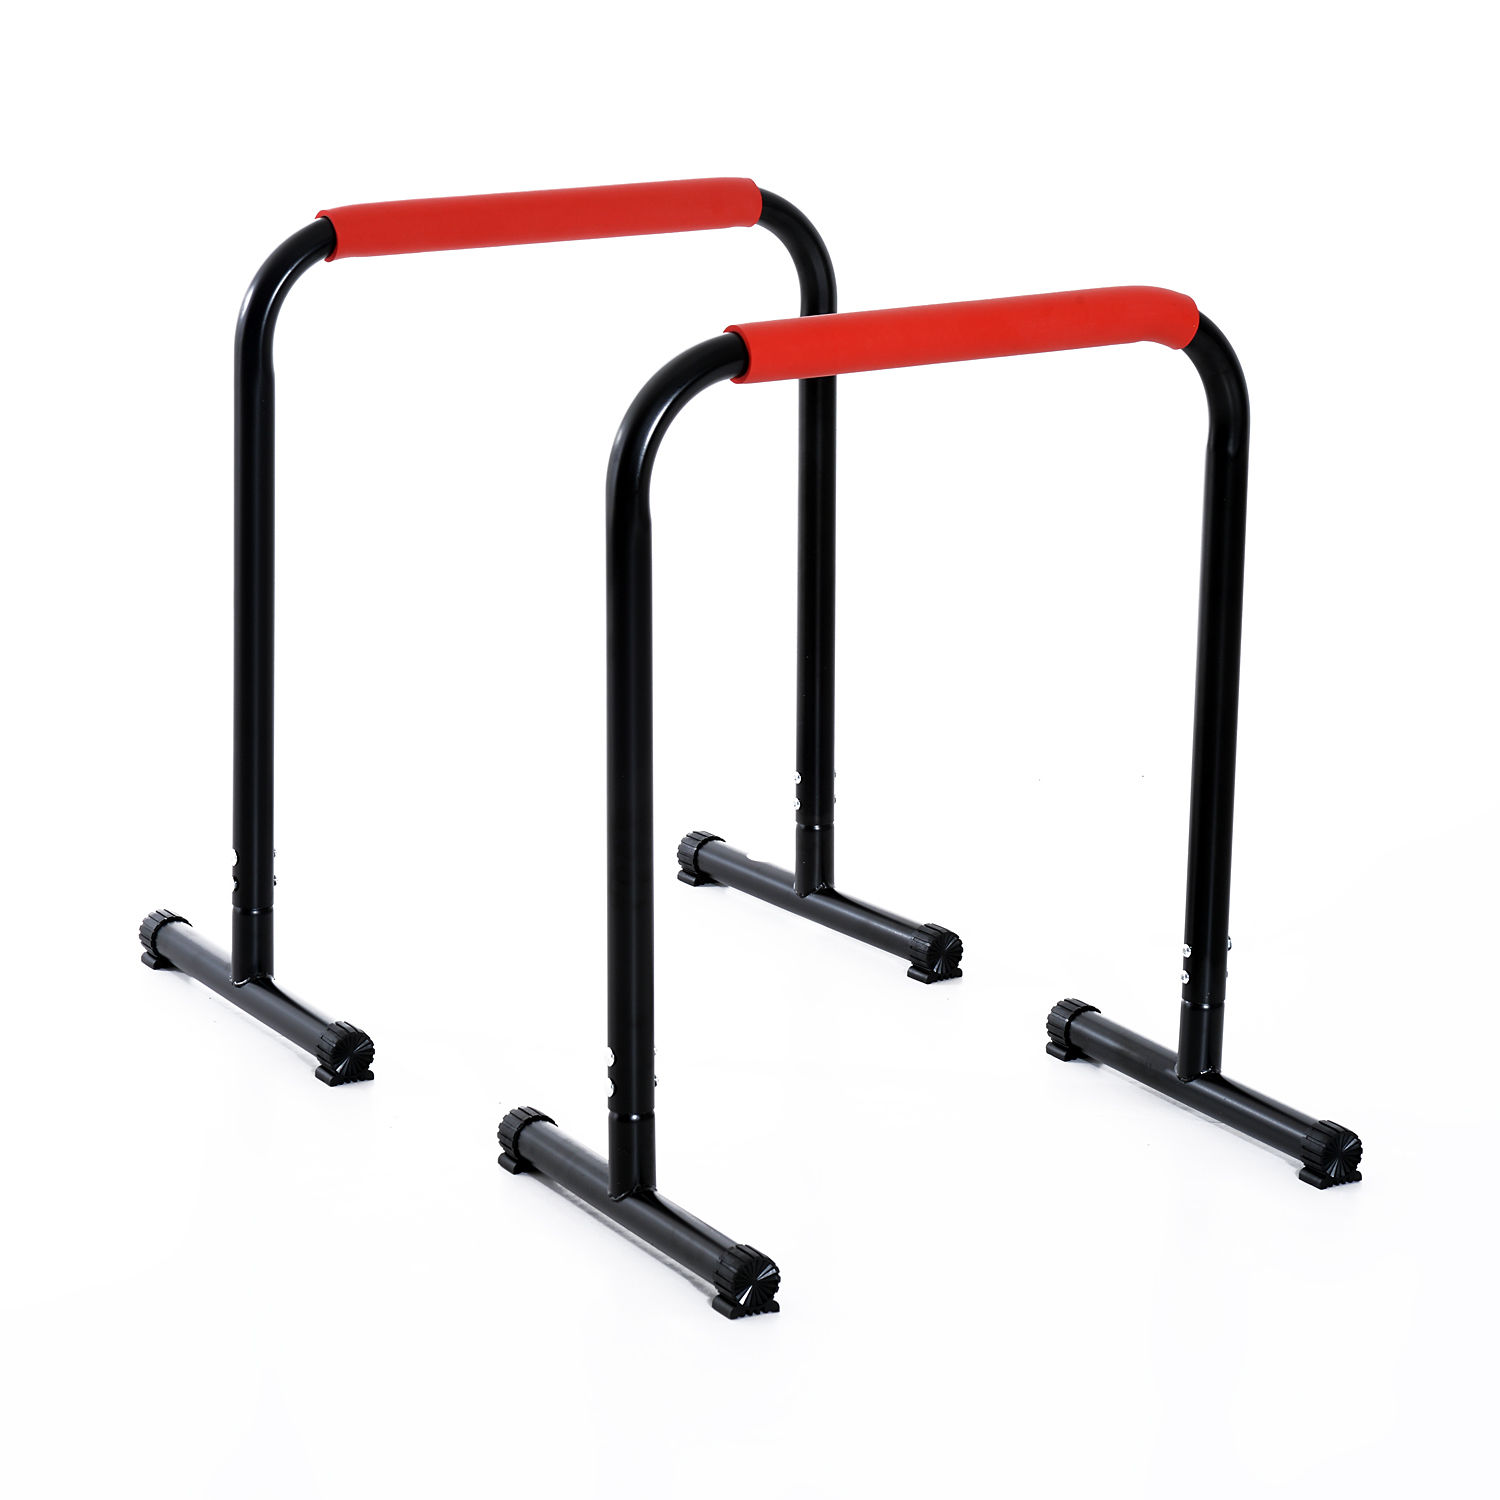 Soozier 29 x 25 Parallette Dip Station Bars - Black